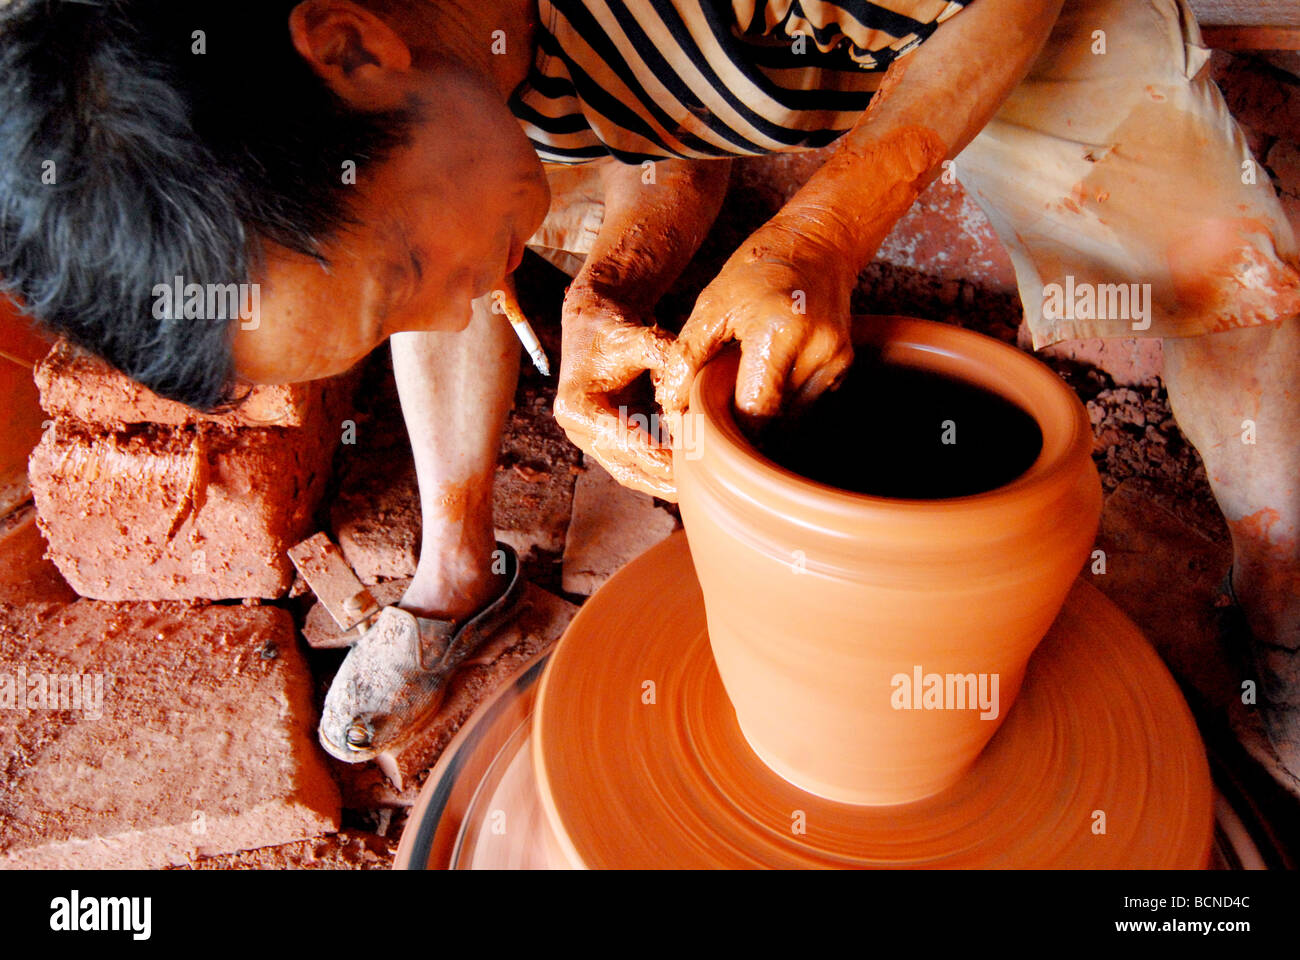 Chinese man making clay pots using century old technique in a kiln, Shuangliu, Szechwan Province, China - Stock Image